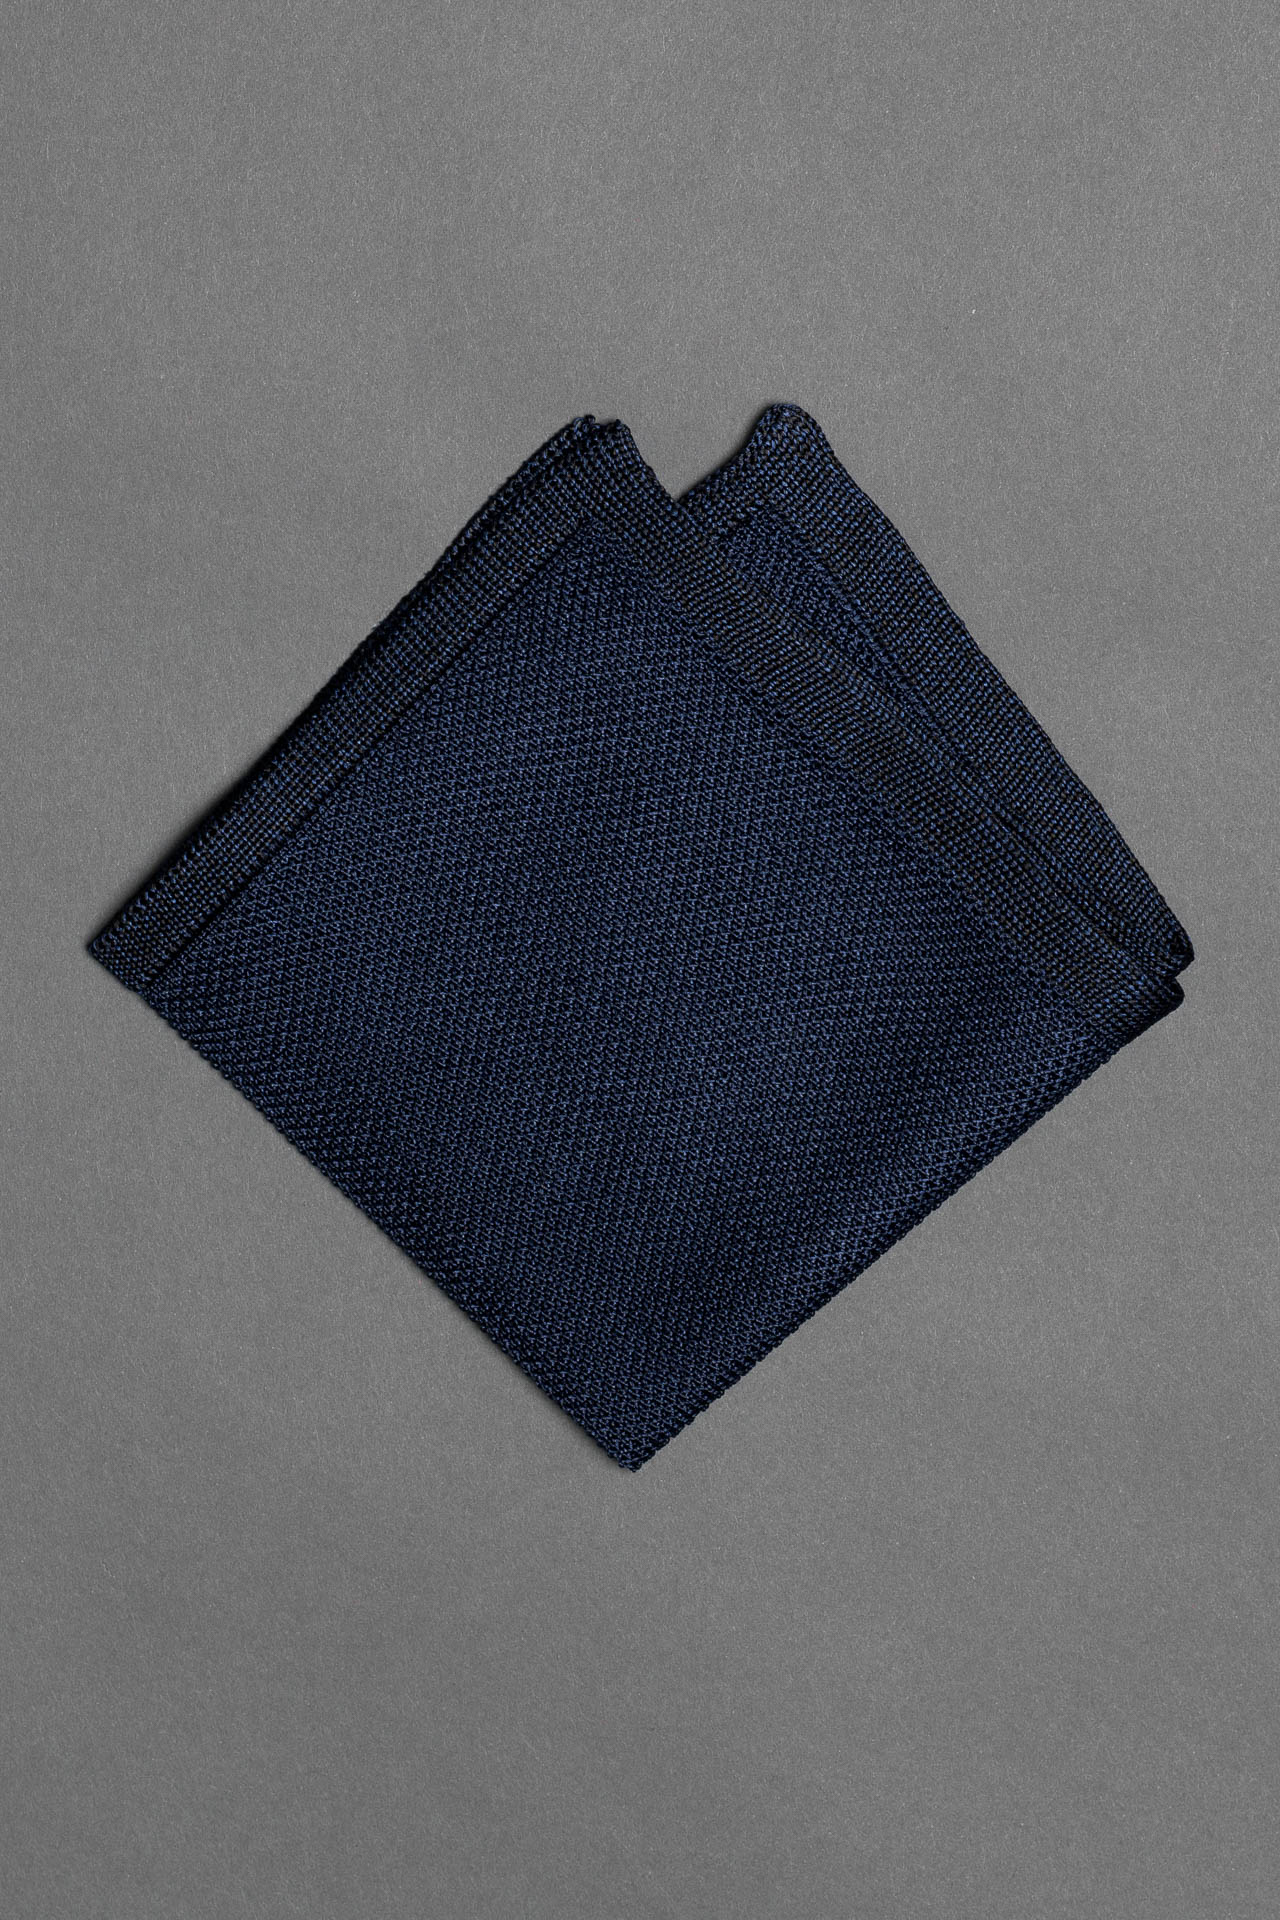 9. Melange - Pocket Square